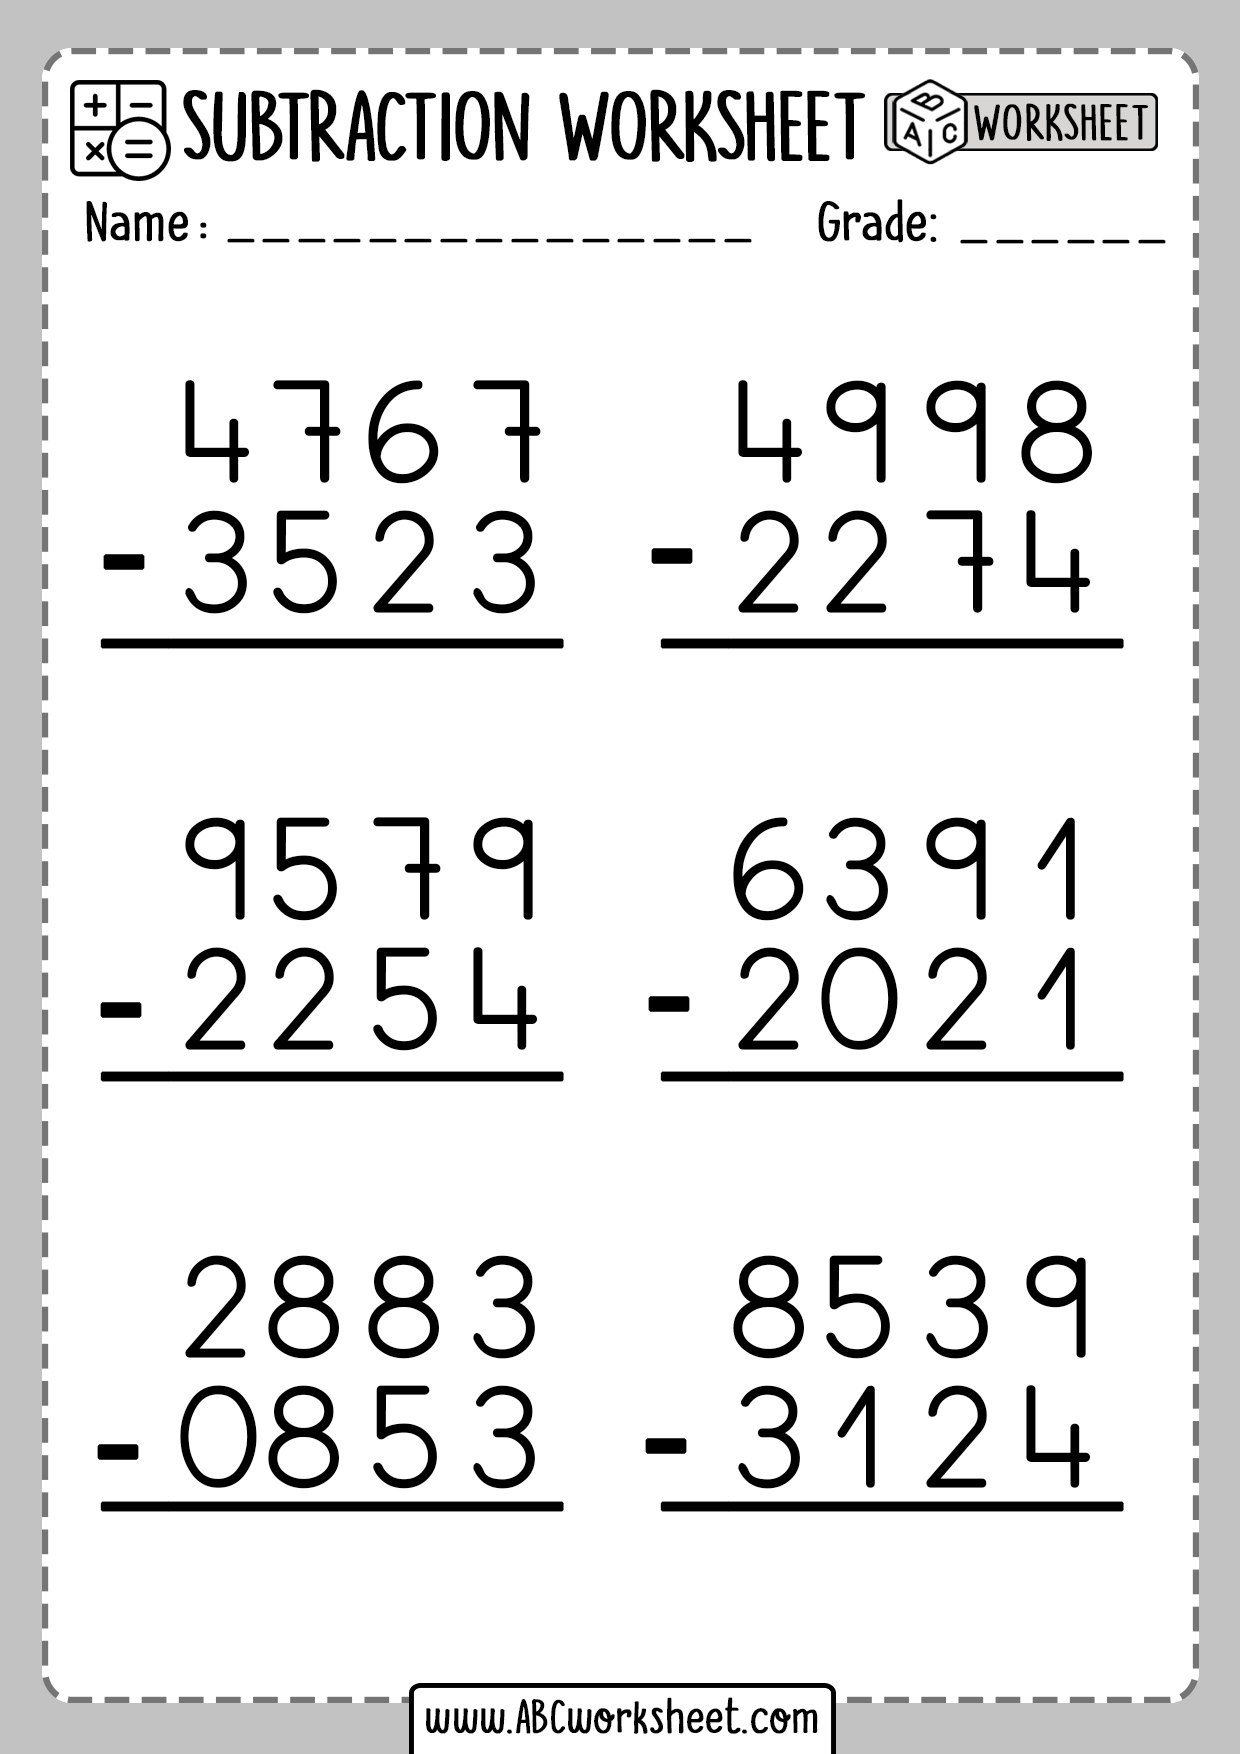 Subtraction Without Regrouping Worksheet